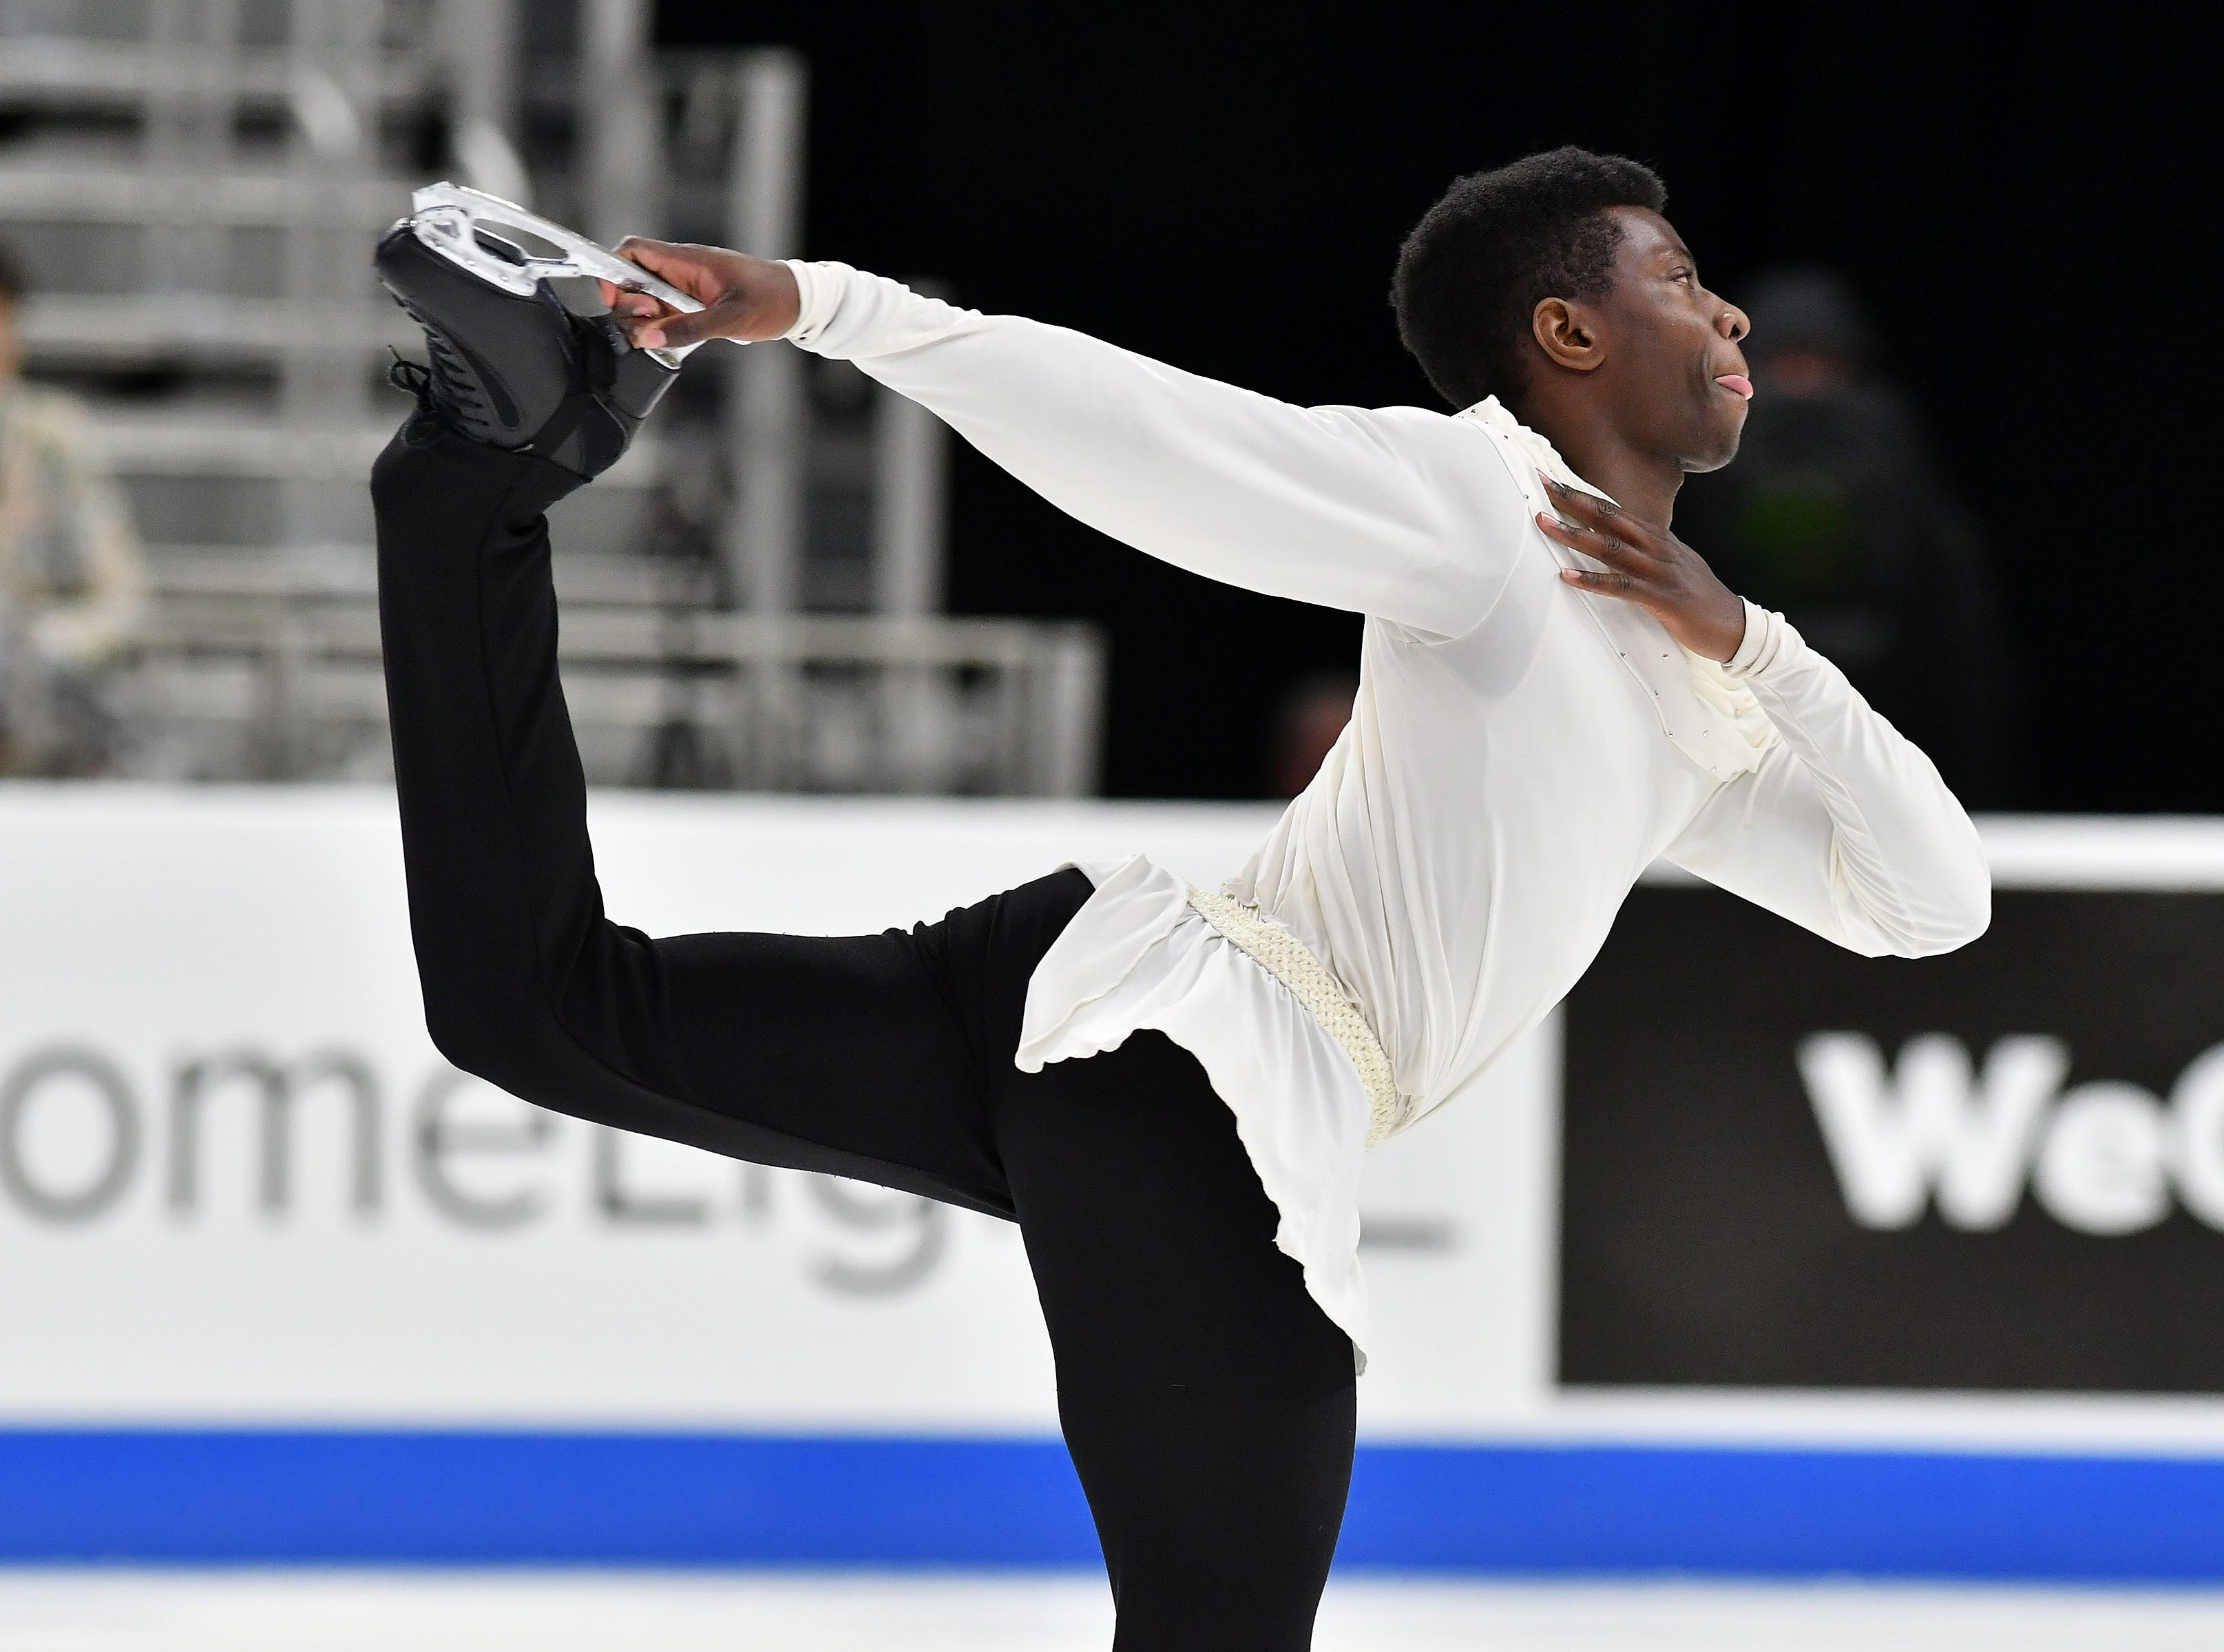 Emmanuel Savary skates in the men's free skate.